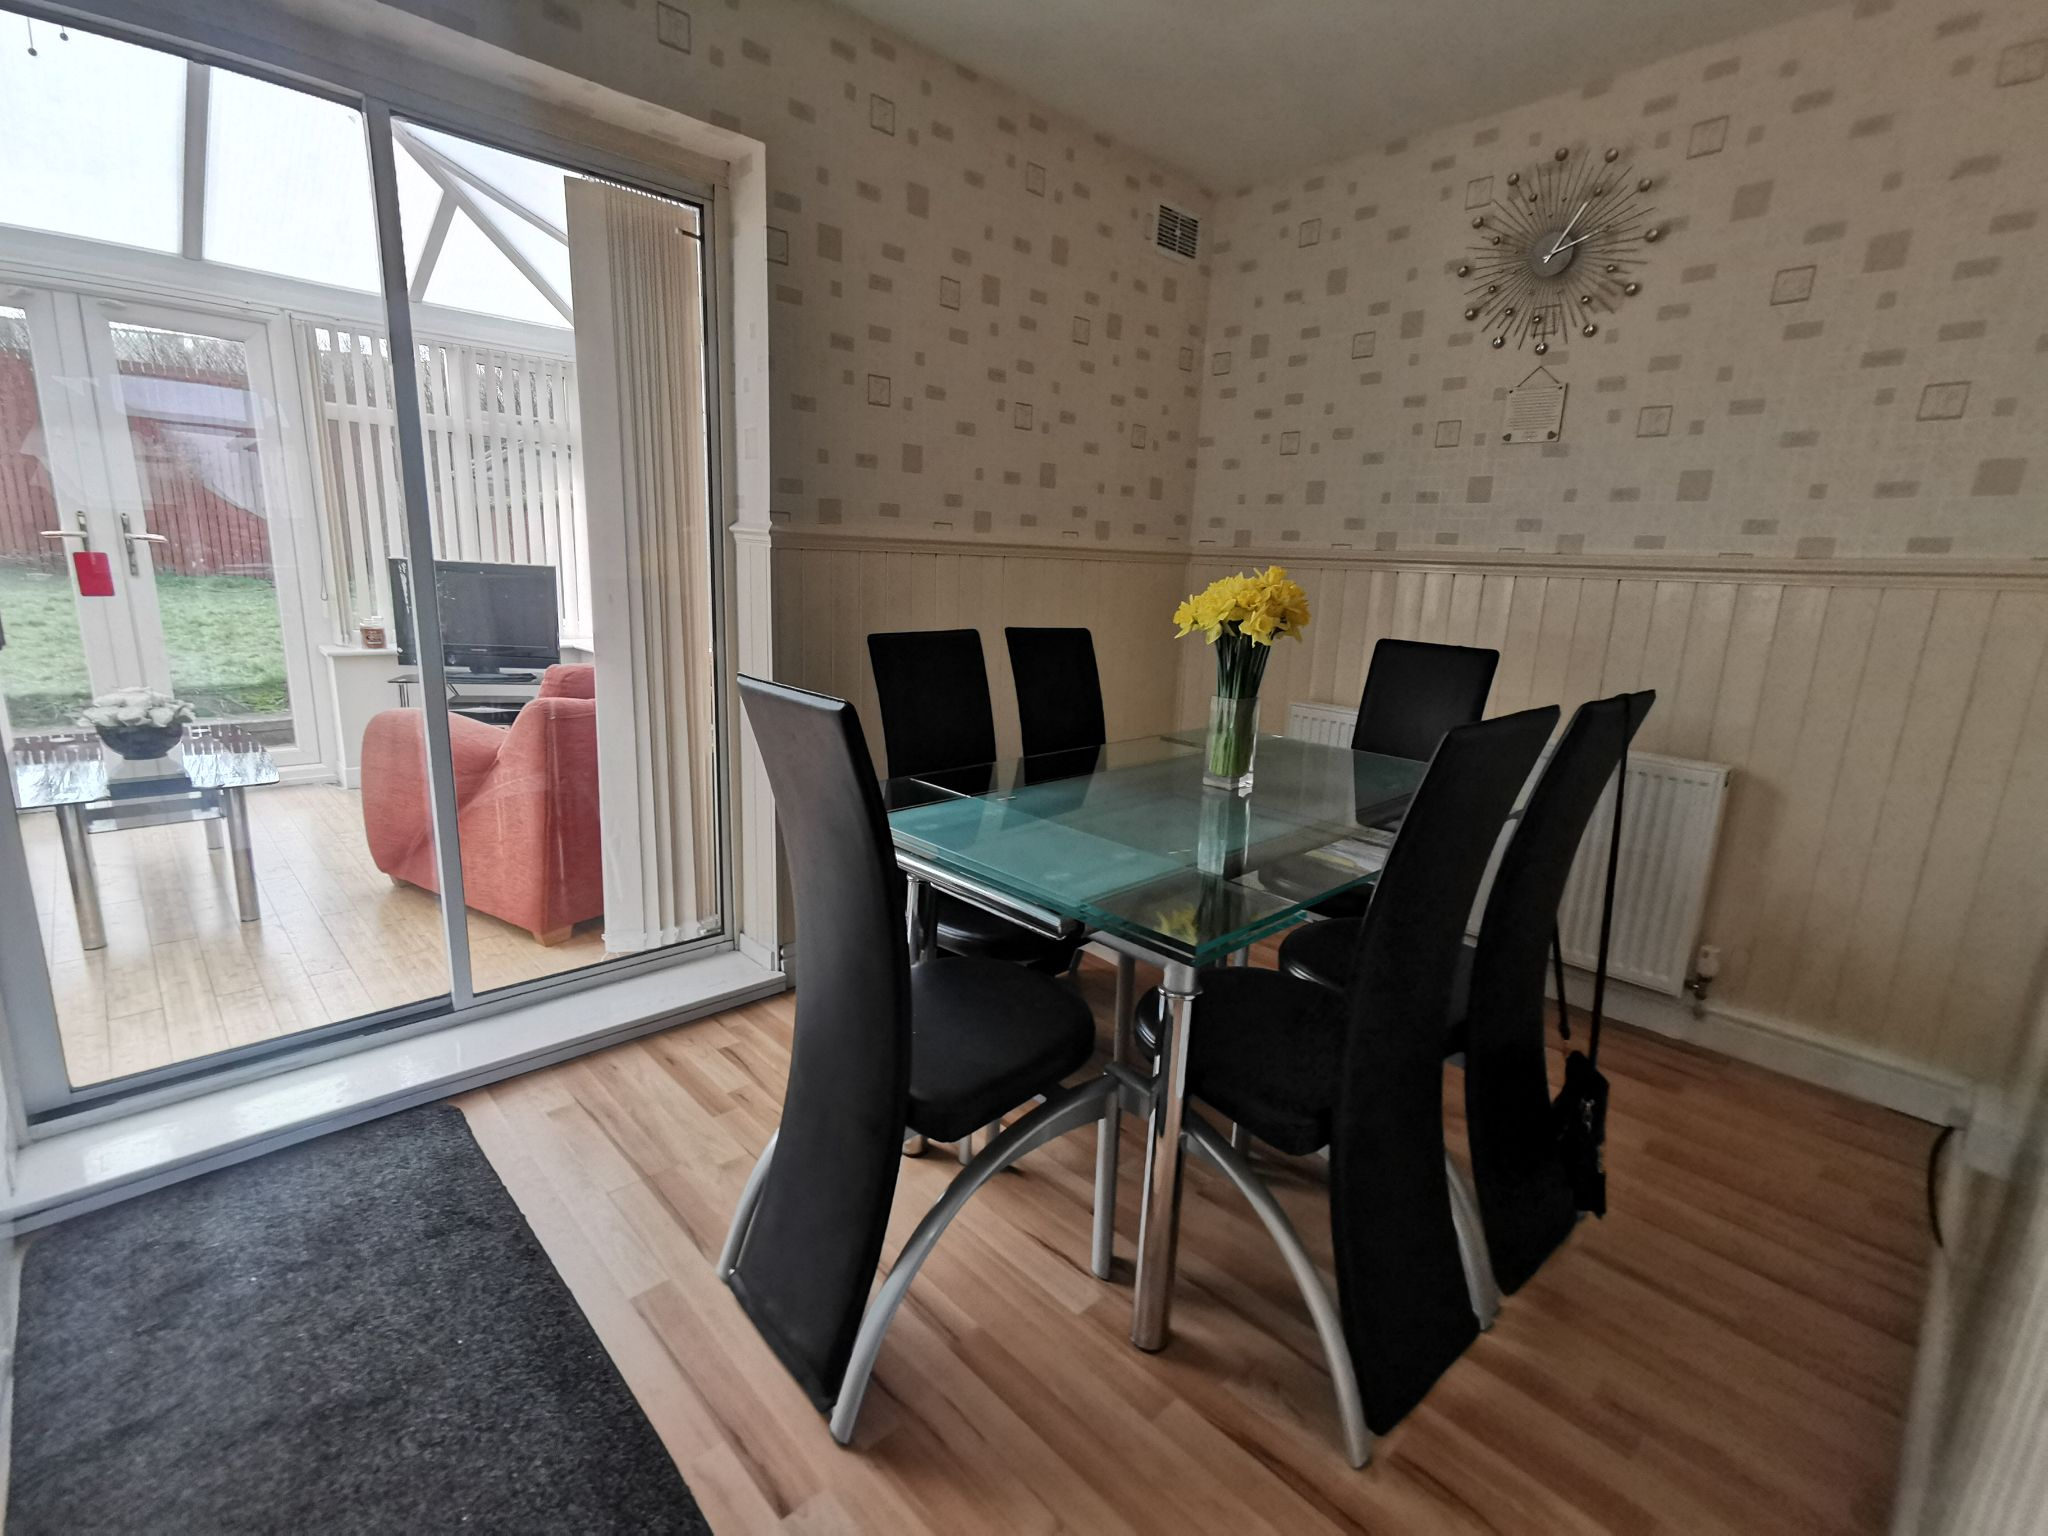 3 bedroom semi-detached house in Bradford - Photograph 4.